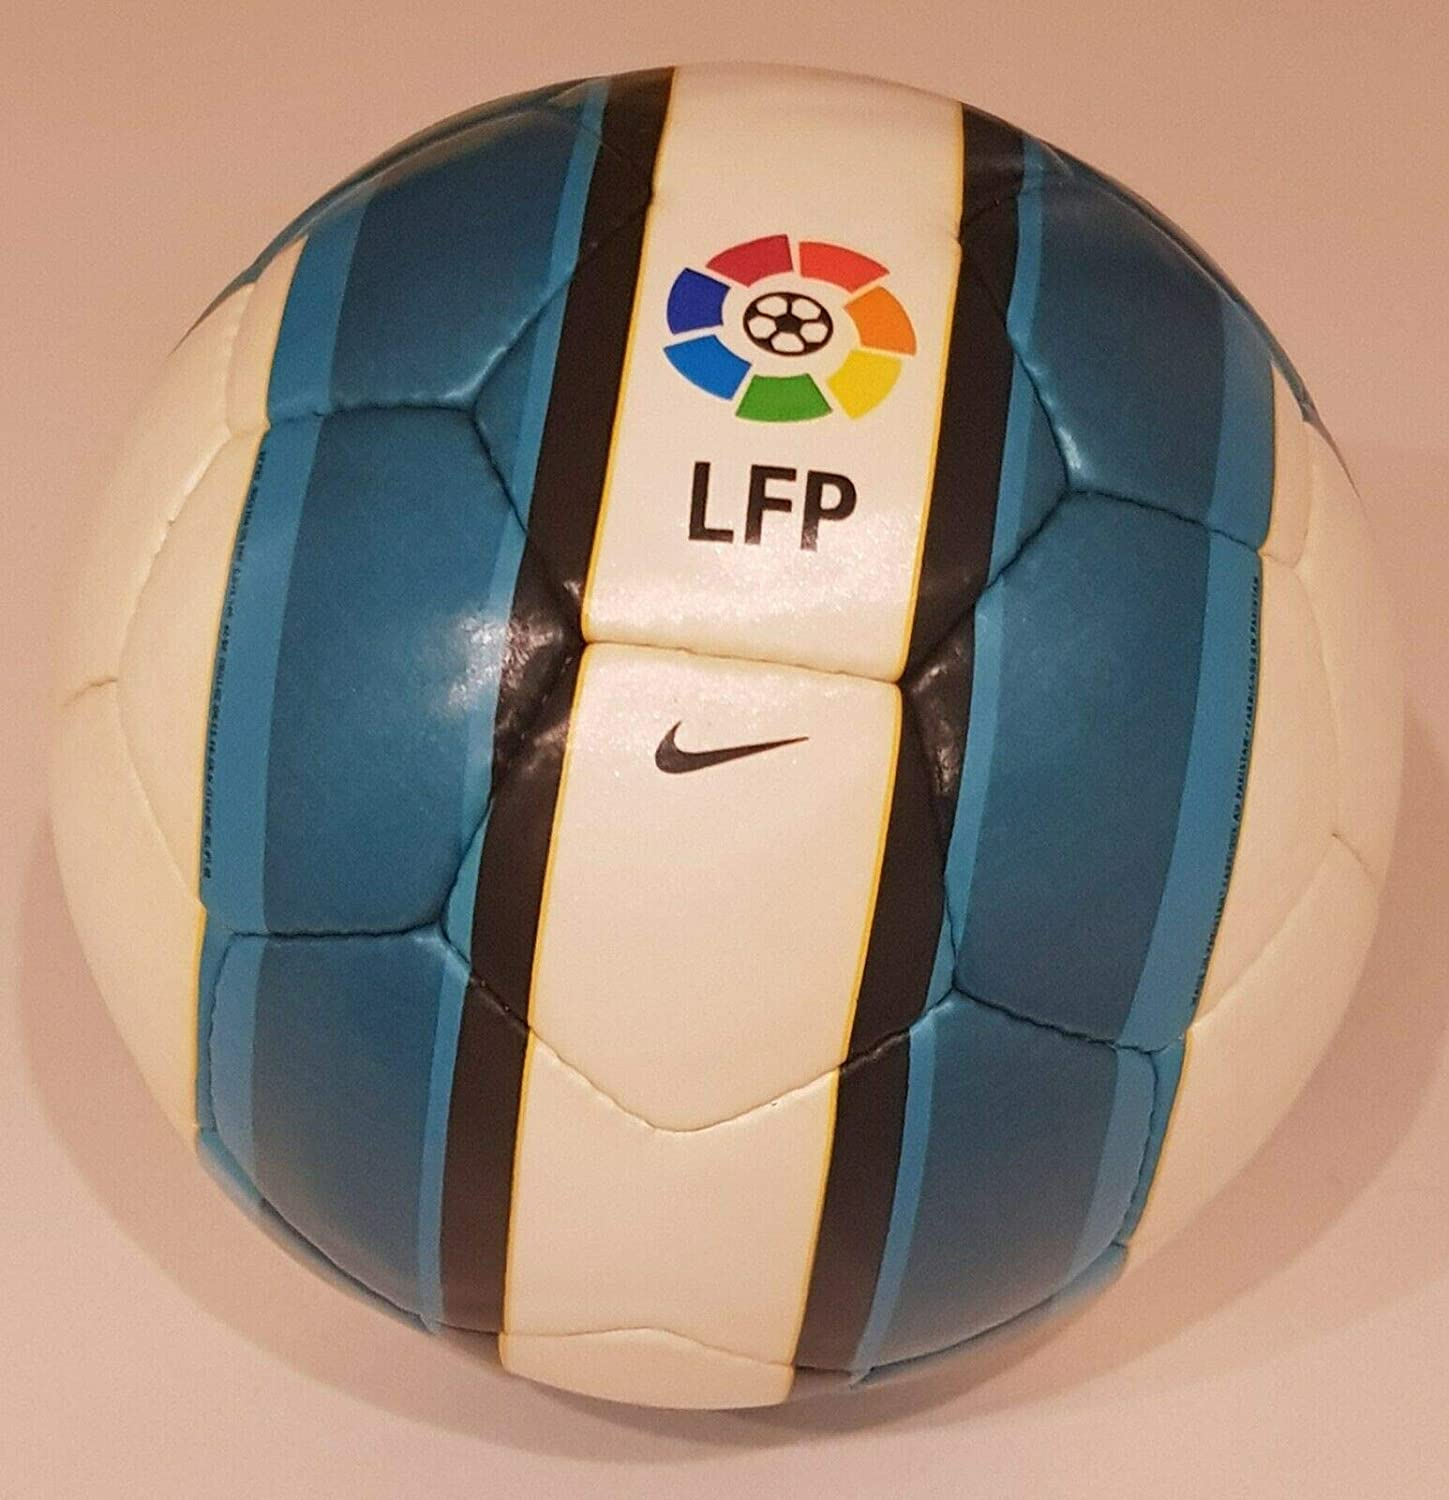 Nike T90 Aerow II 2007/08 Official LFP La Liga Match Soccer Ball ...